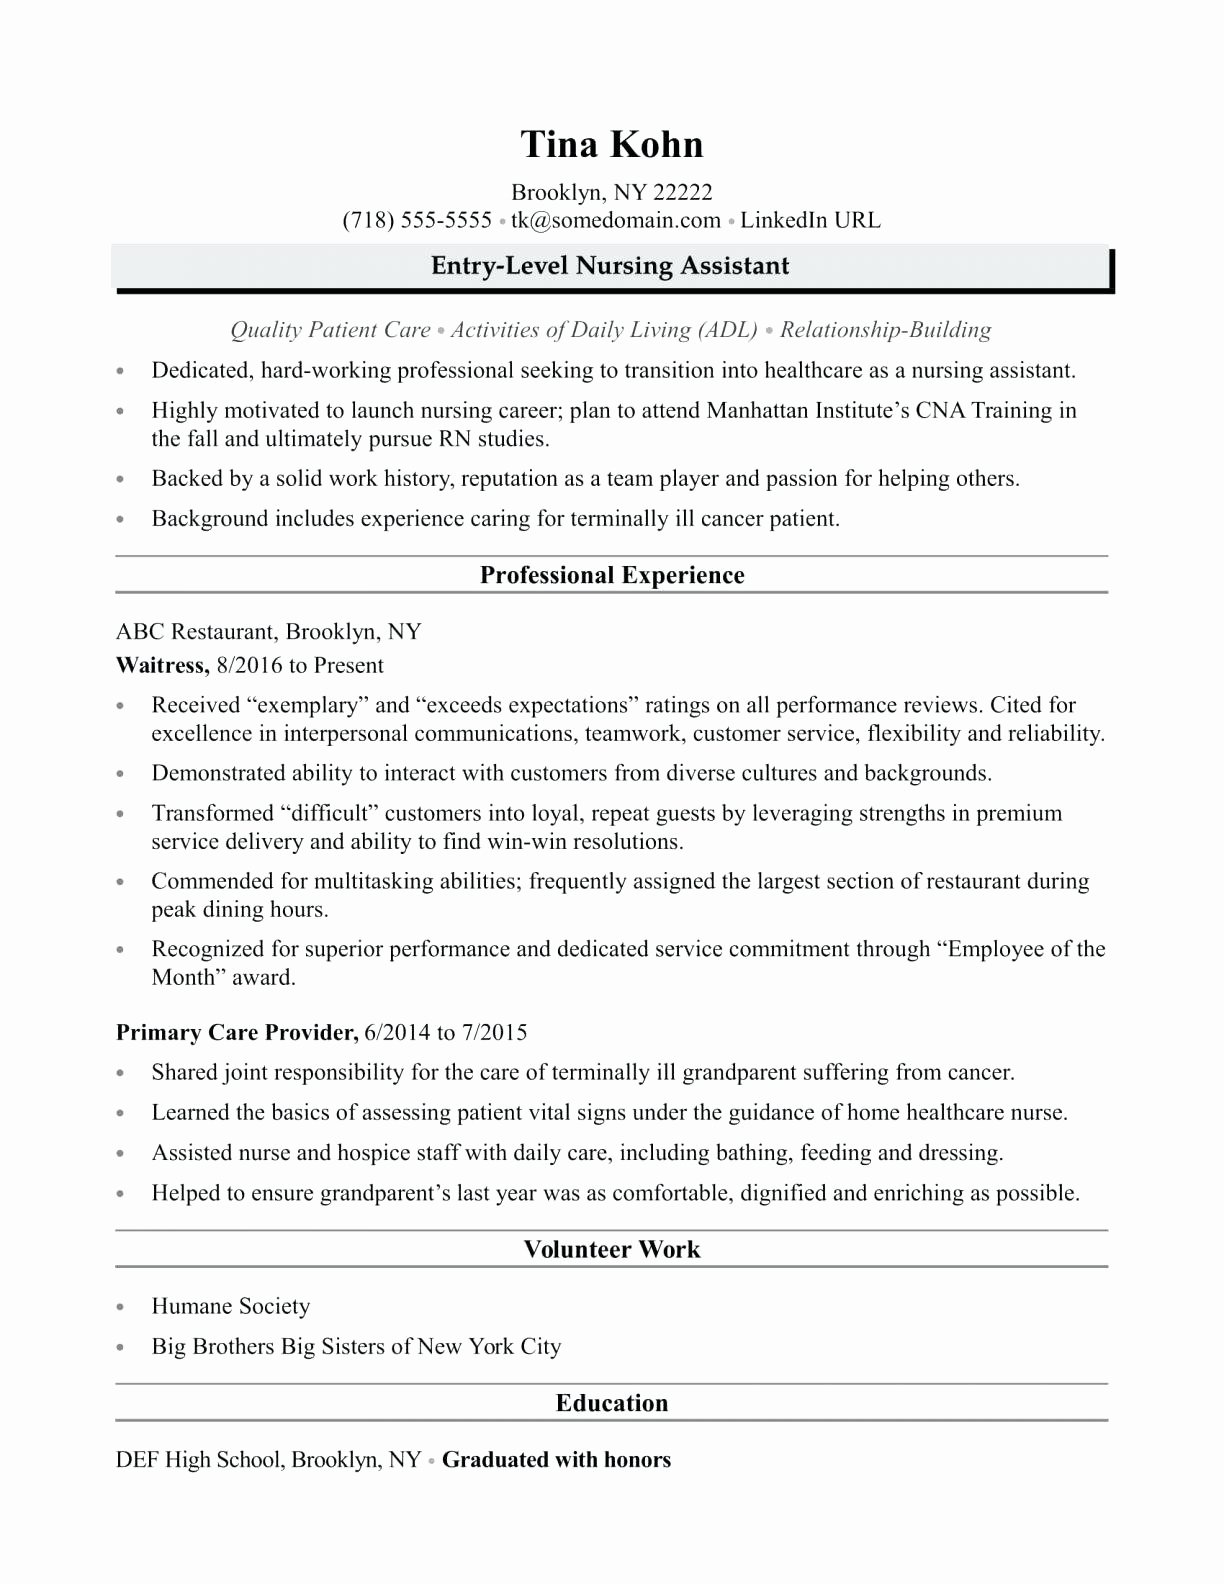 Home Health Care Plan Template Unique 10 Nursing Care Plan for Cancer Patient